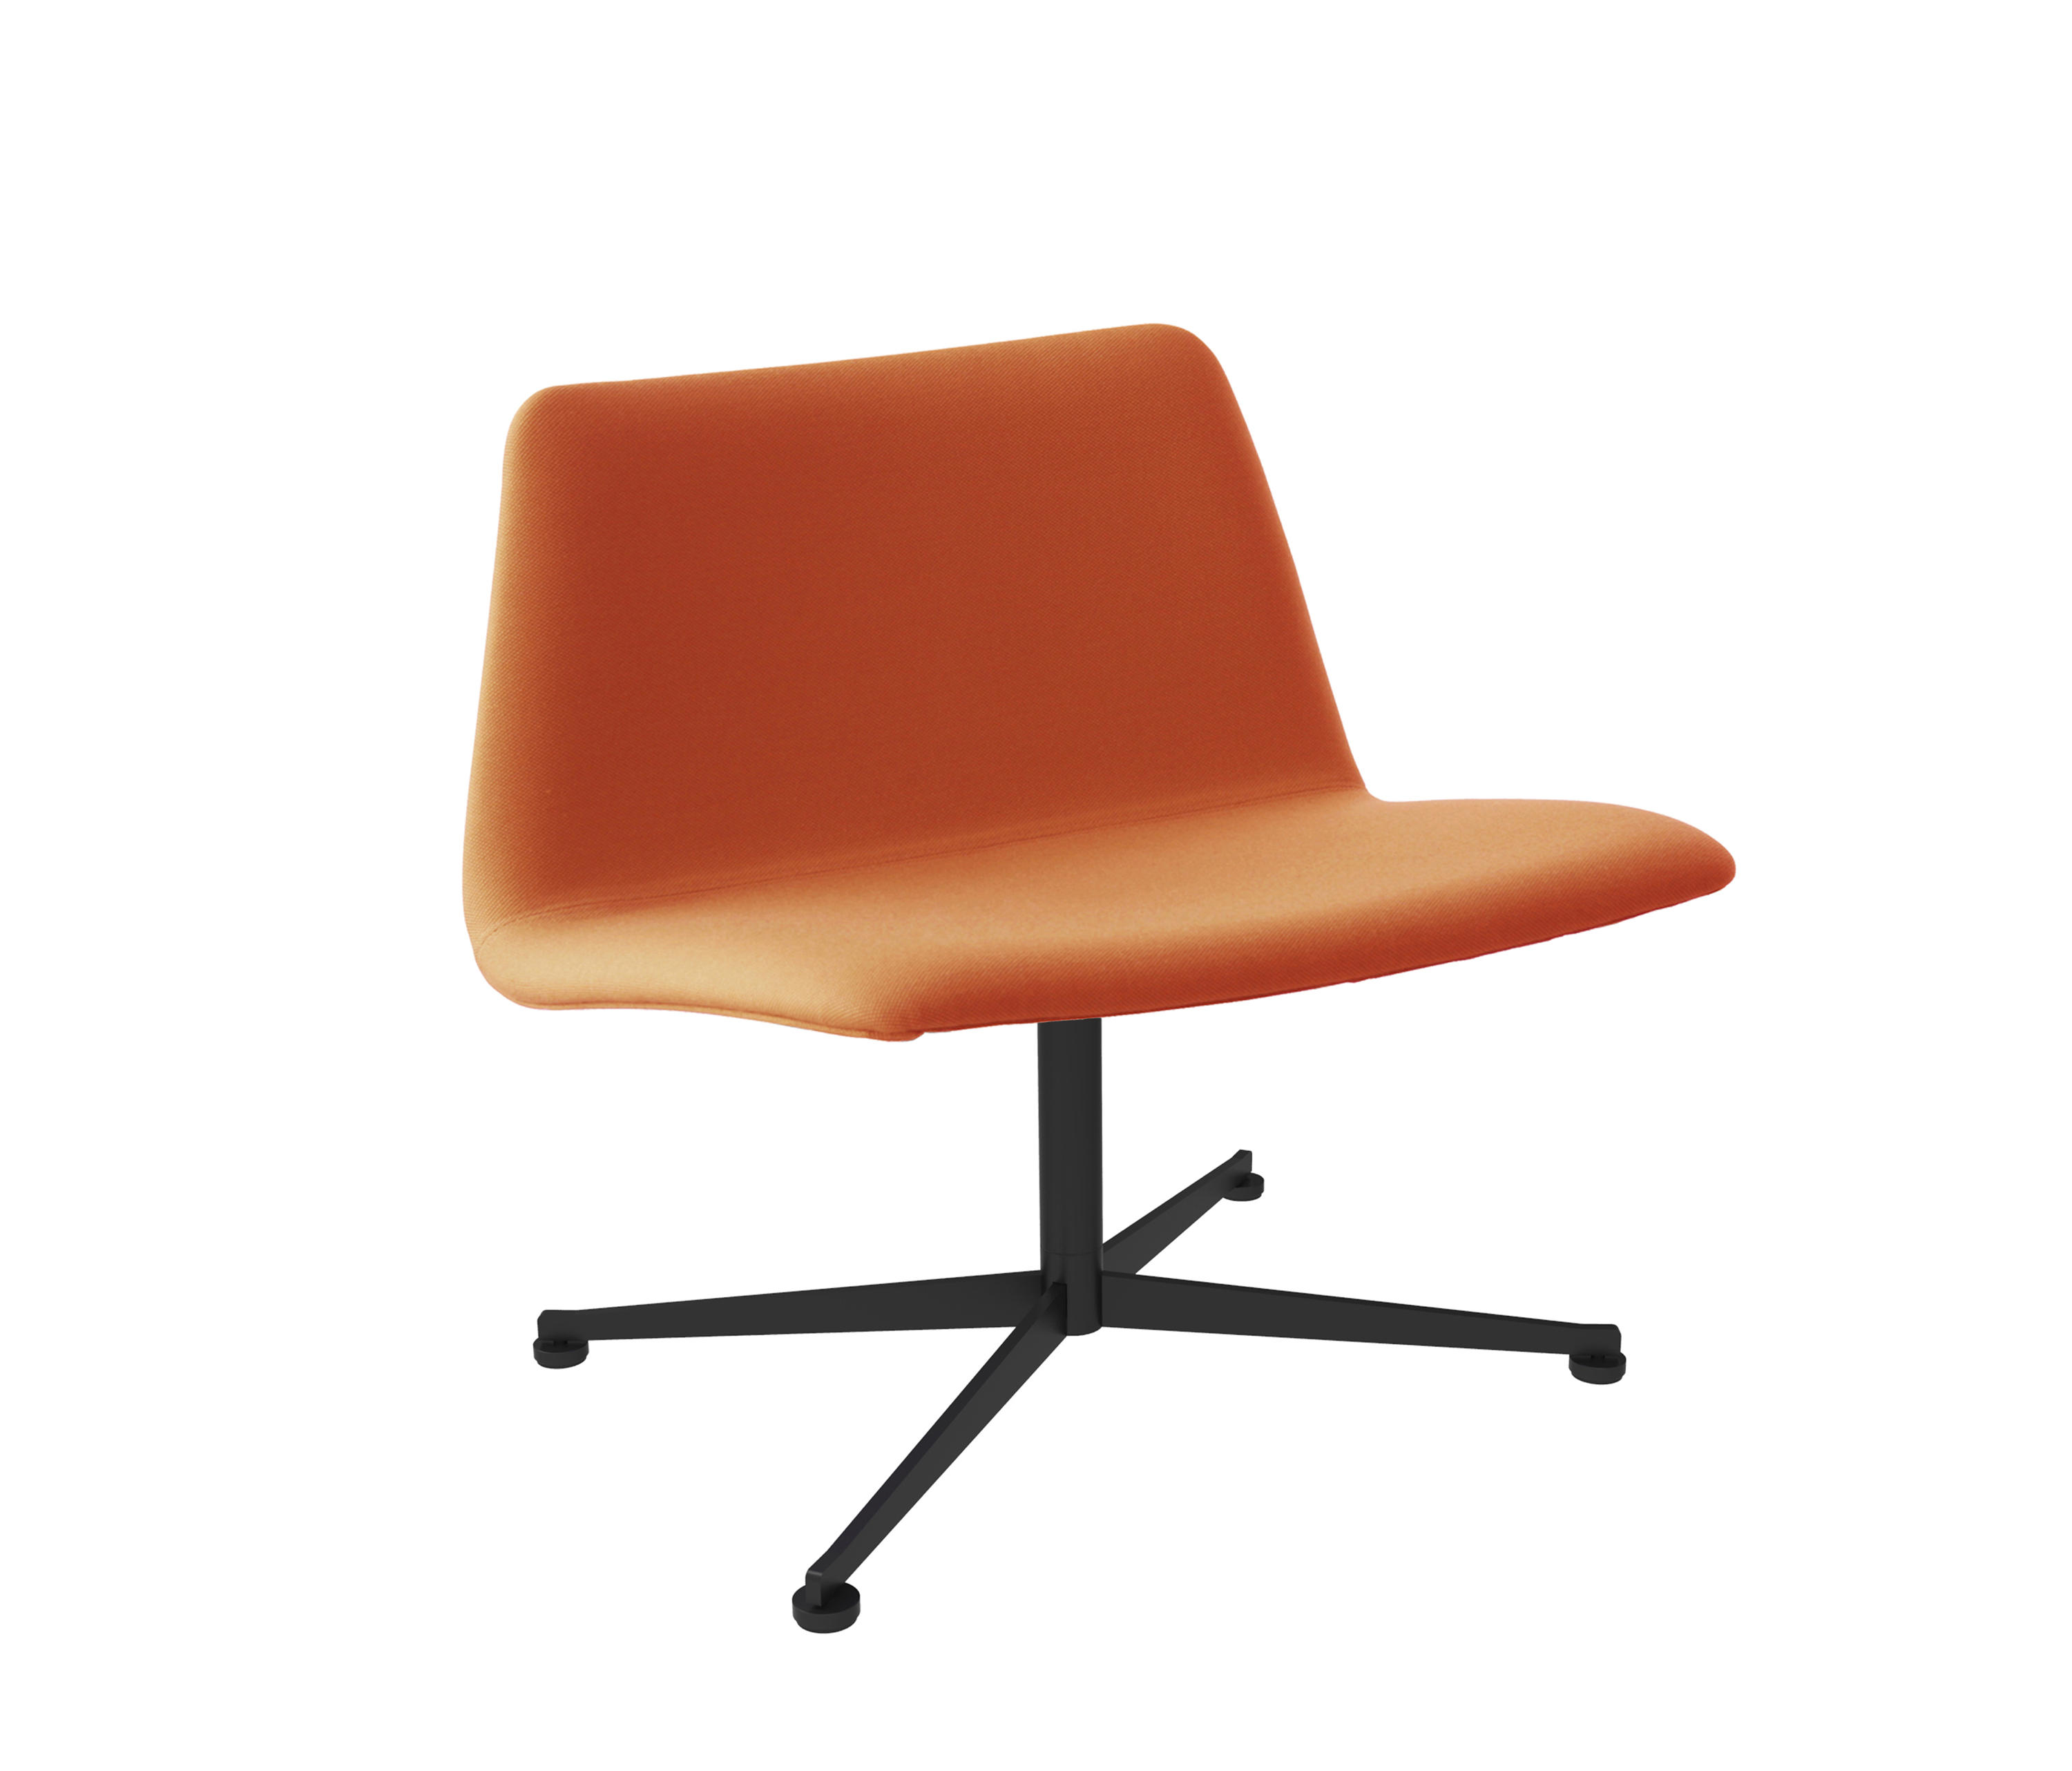 Spinal chair 80 swivel base lounge chairs from paustian for 80s lounge chair